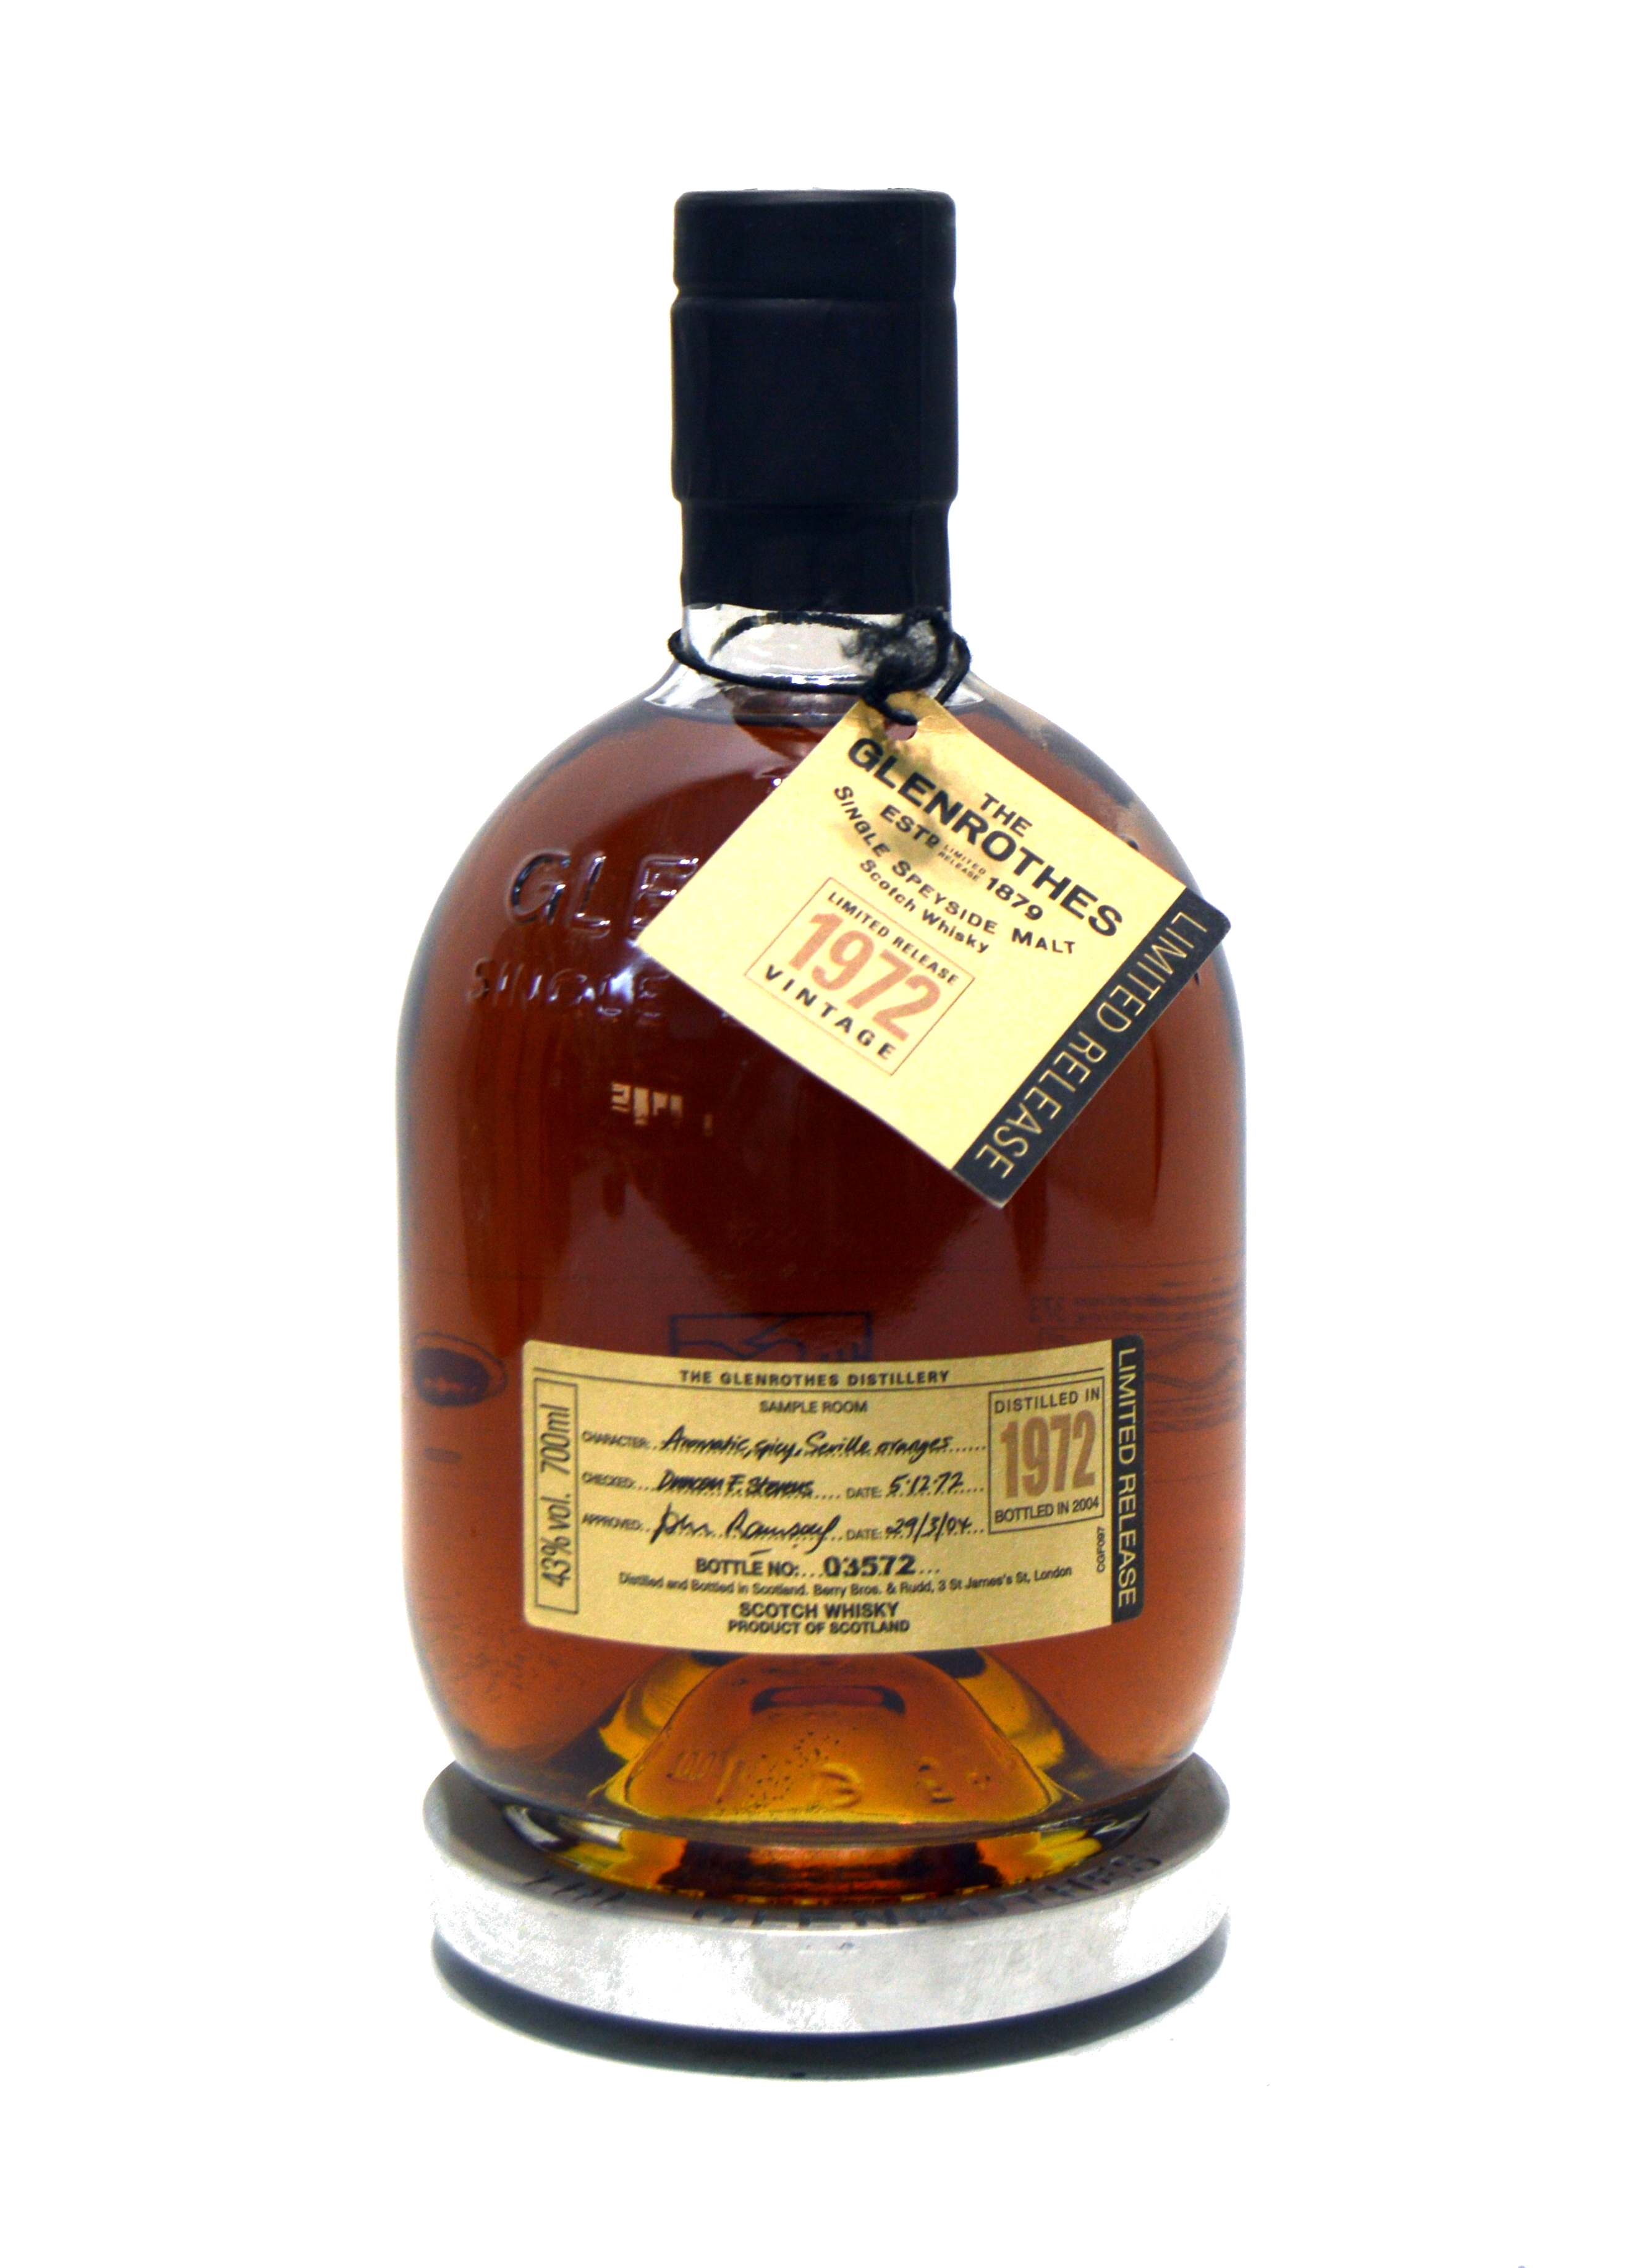 The Glenrothes Vintage 1972